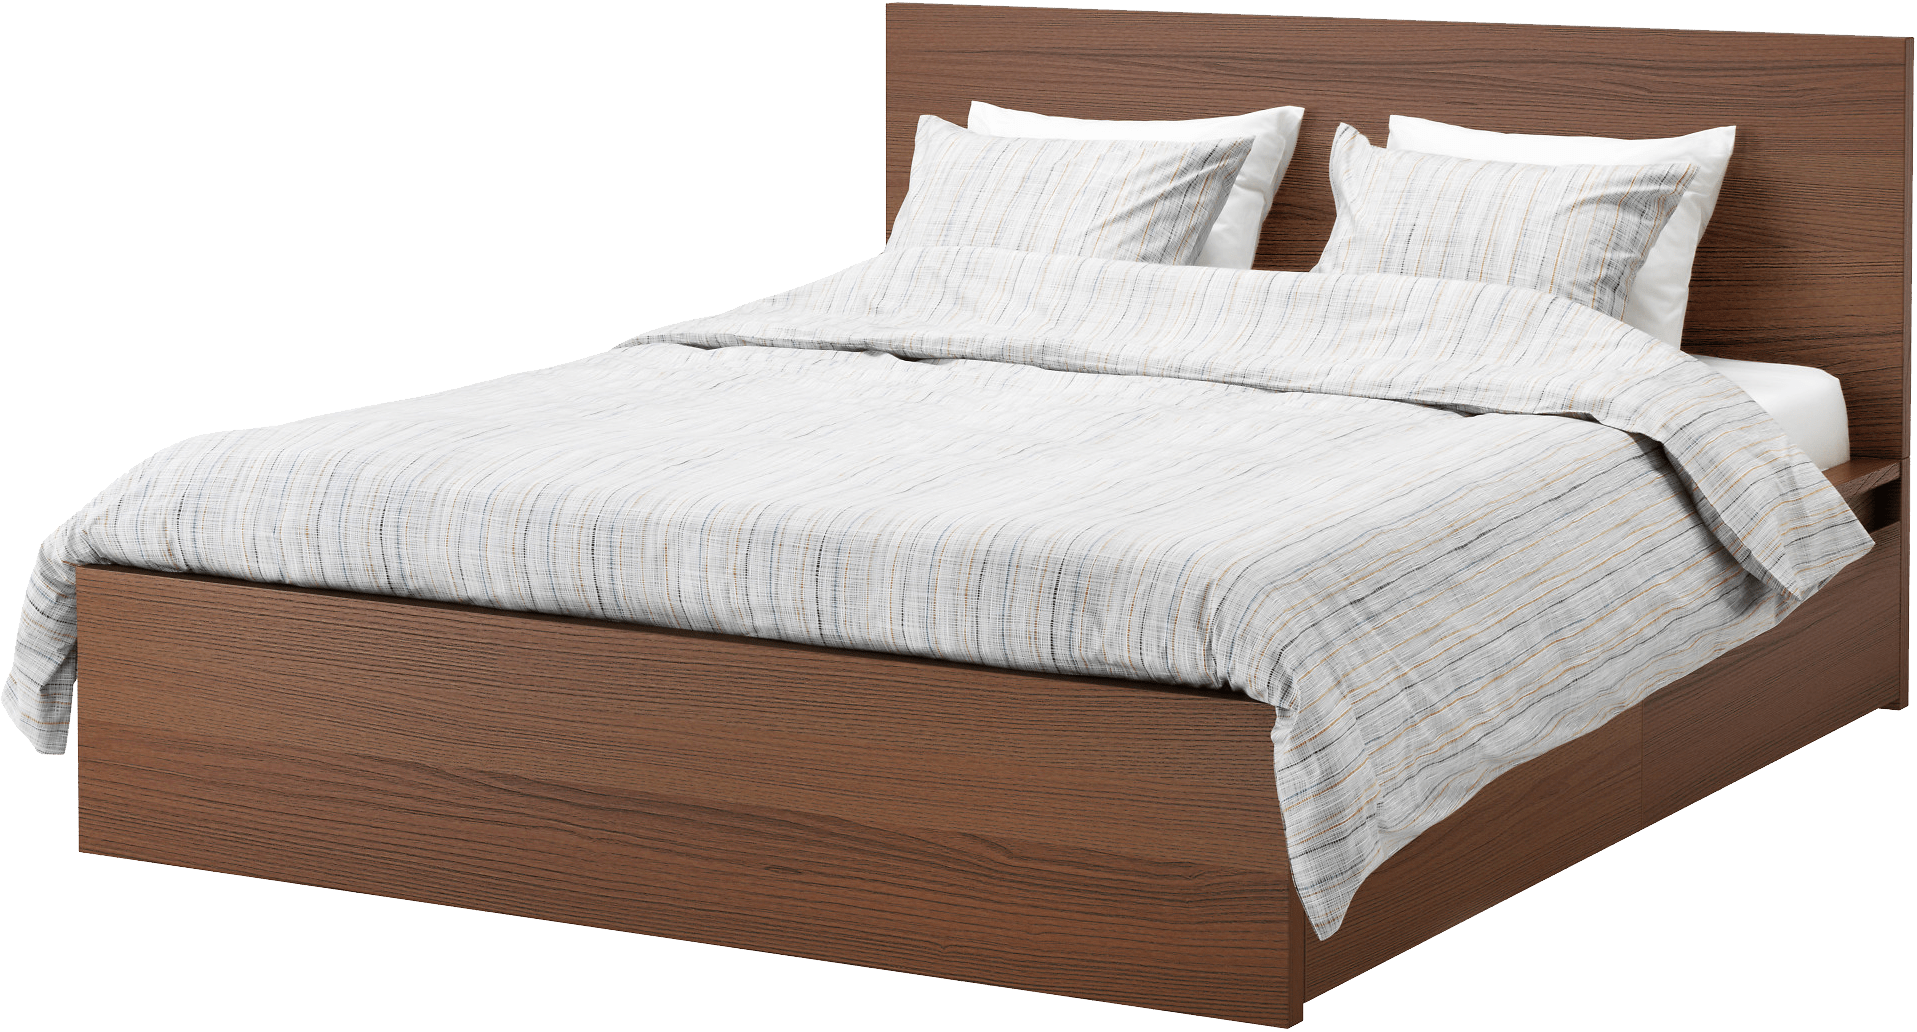 Modern Wooden Bed transparent PNG.